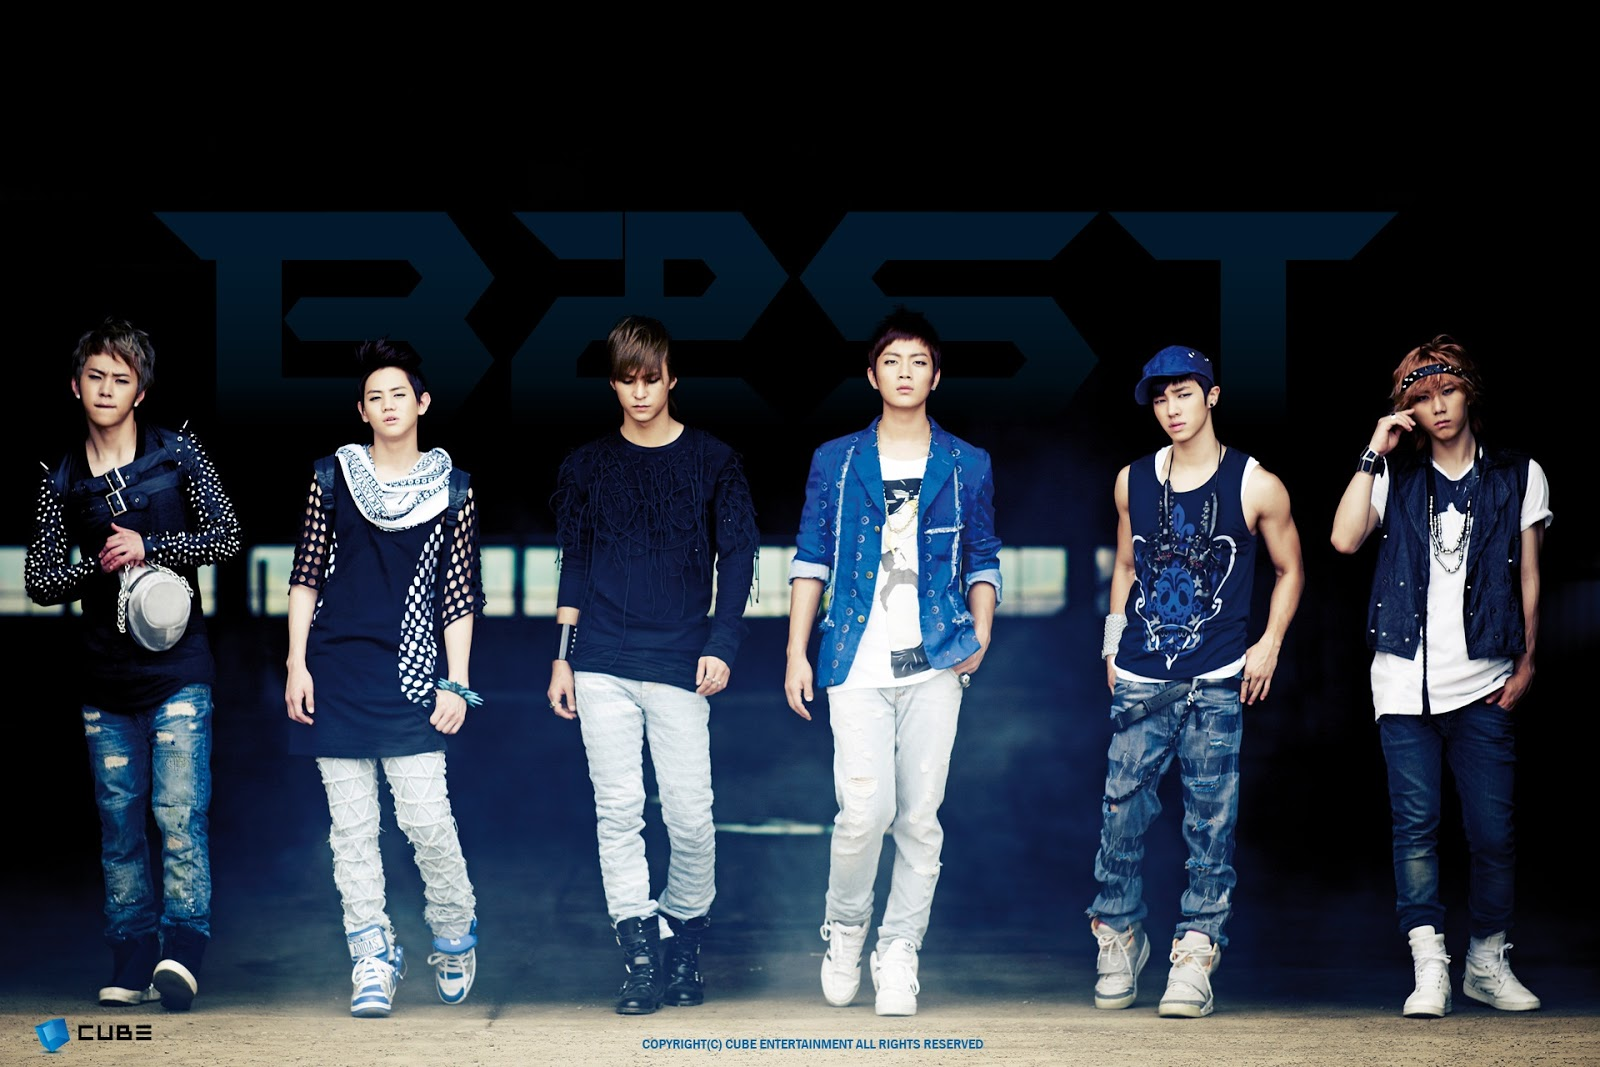 beast b2st 비스트 wallpaper hd 2 beast b2st 비스트 wallpaper